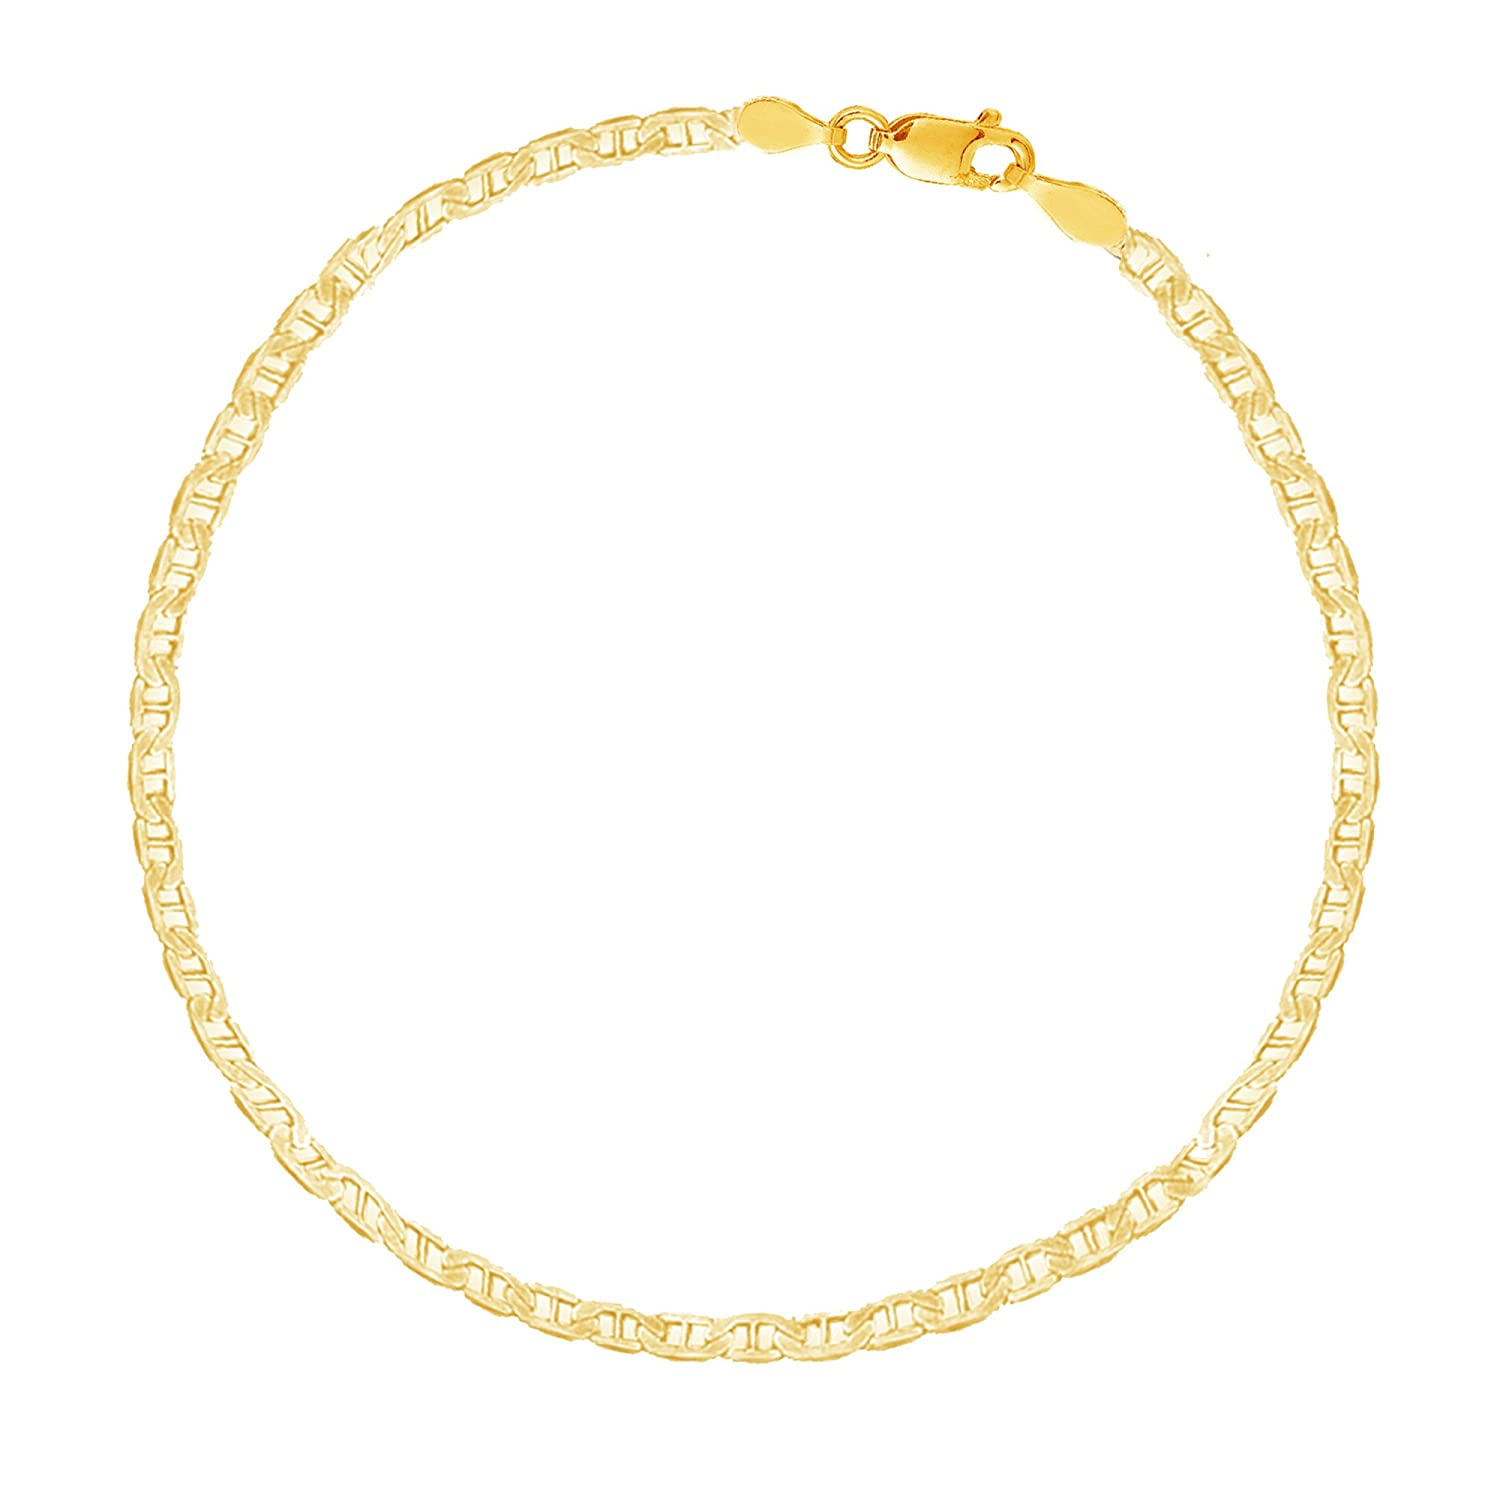 14k Solid Yellow Gold Mariner Link Chain Ankle Anklet 10 Inches Ritastephens